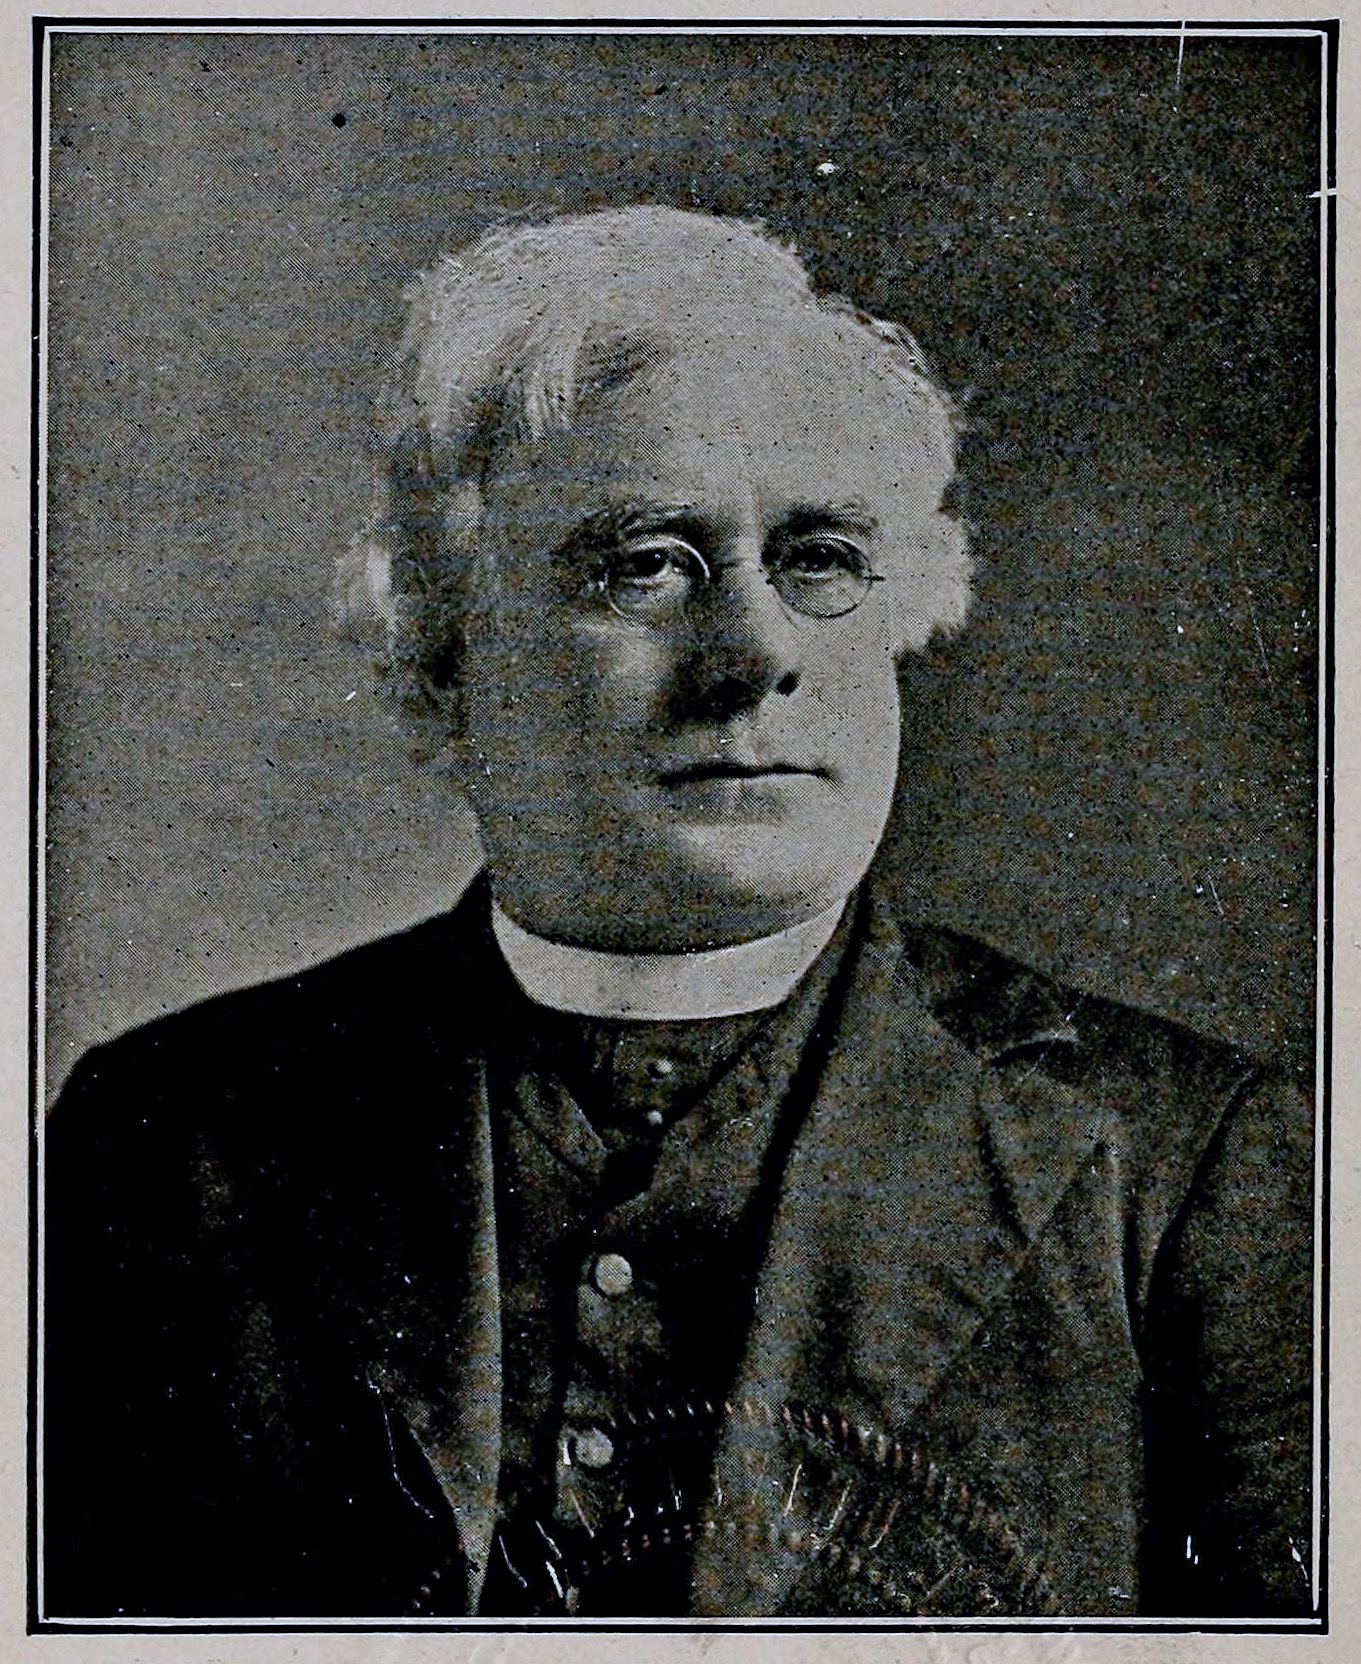 A photograph of Lambing from his 1914 work ''Brief Biological Sketches of the Deceased Bishops and Priests who Labored in the Diocese of Pittsburgh from the Earliest Times to the Present''.